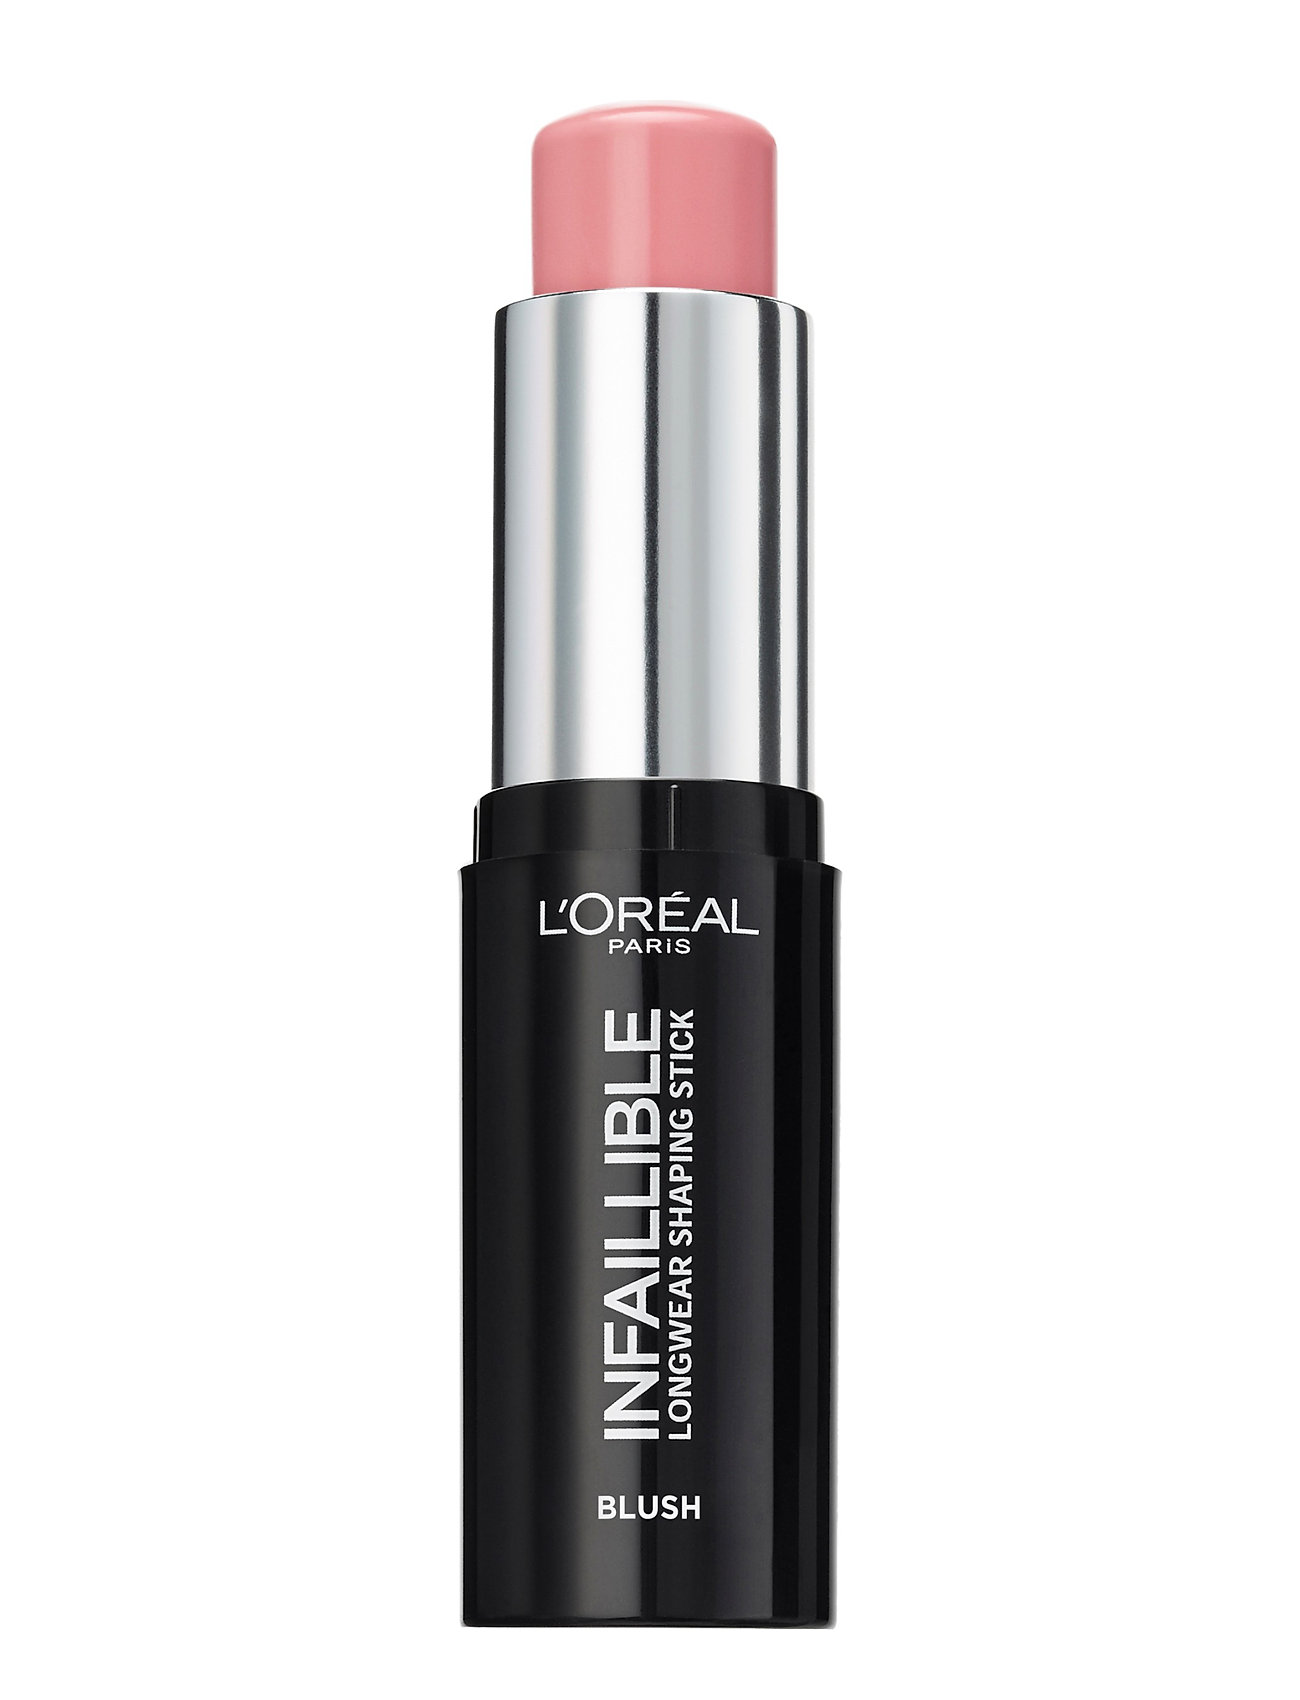 L'Oréal Paris Infallible Stick Blush - 001 SEXY FLUSH